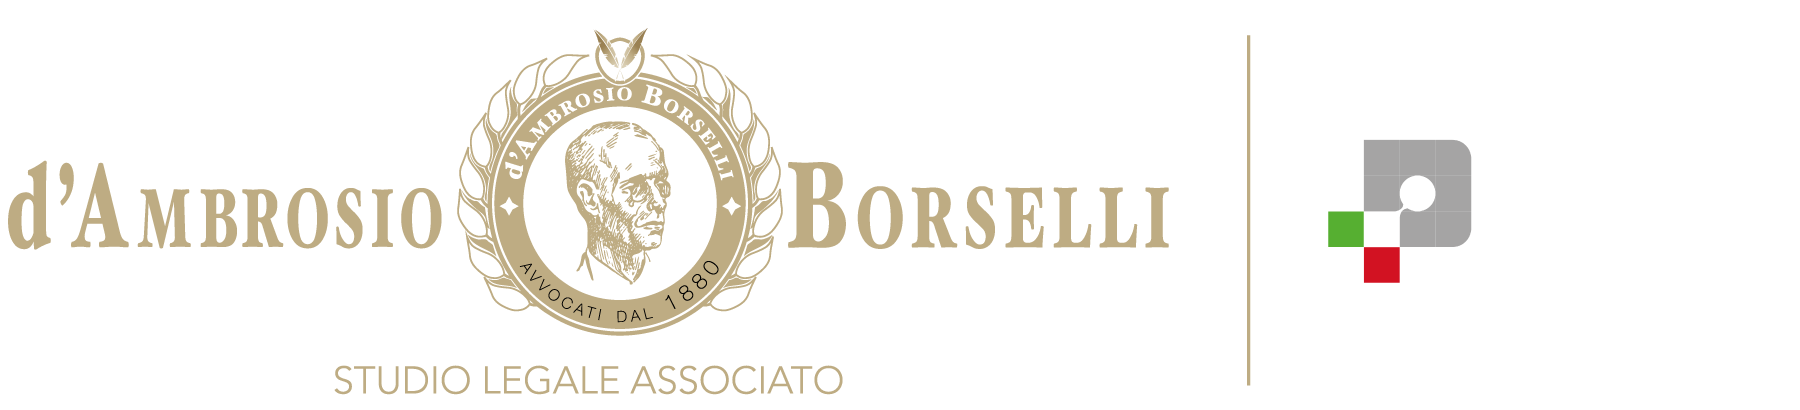 https://www.studioassociatoborselli.it/wp-content/uploads/2021/04/footer-partner.png